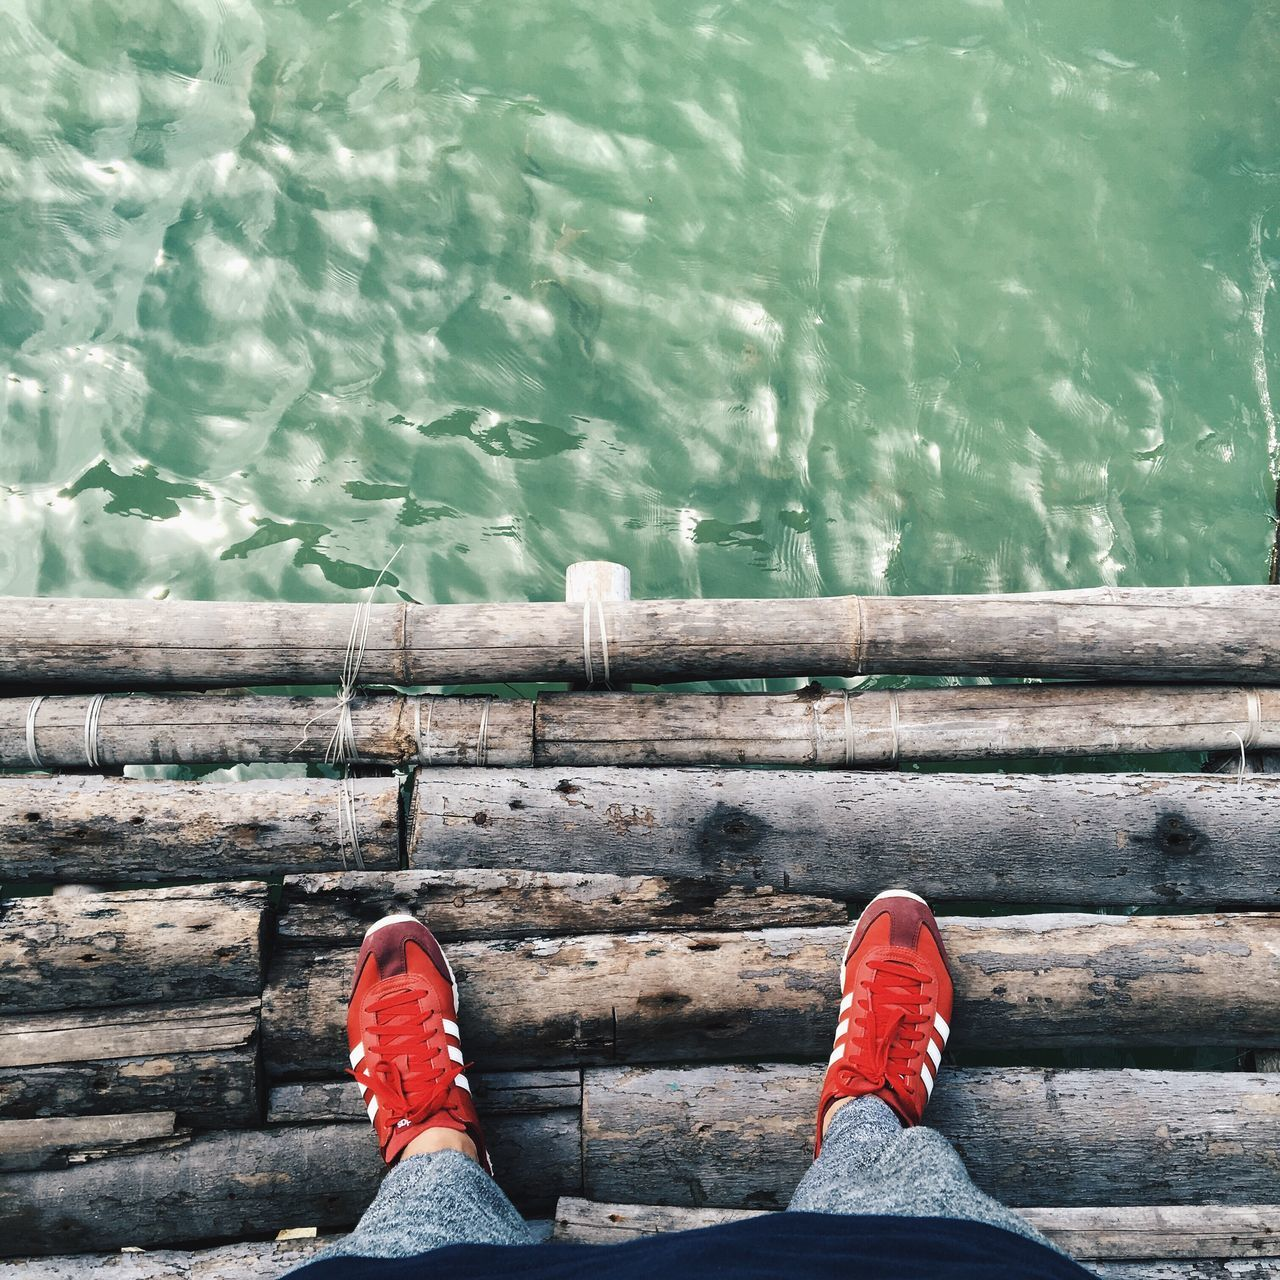 water, low section, human leg, one person, shoe, personal perspective, day, real people, wood - material, standing, leisure activity, outdoors, human body part, lake, red, men, lifestyles, nature, wood paneling, close-up, one man only, people